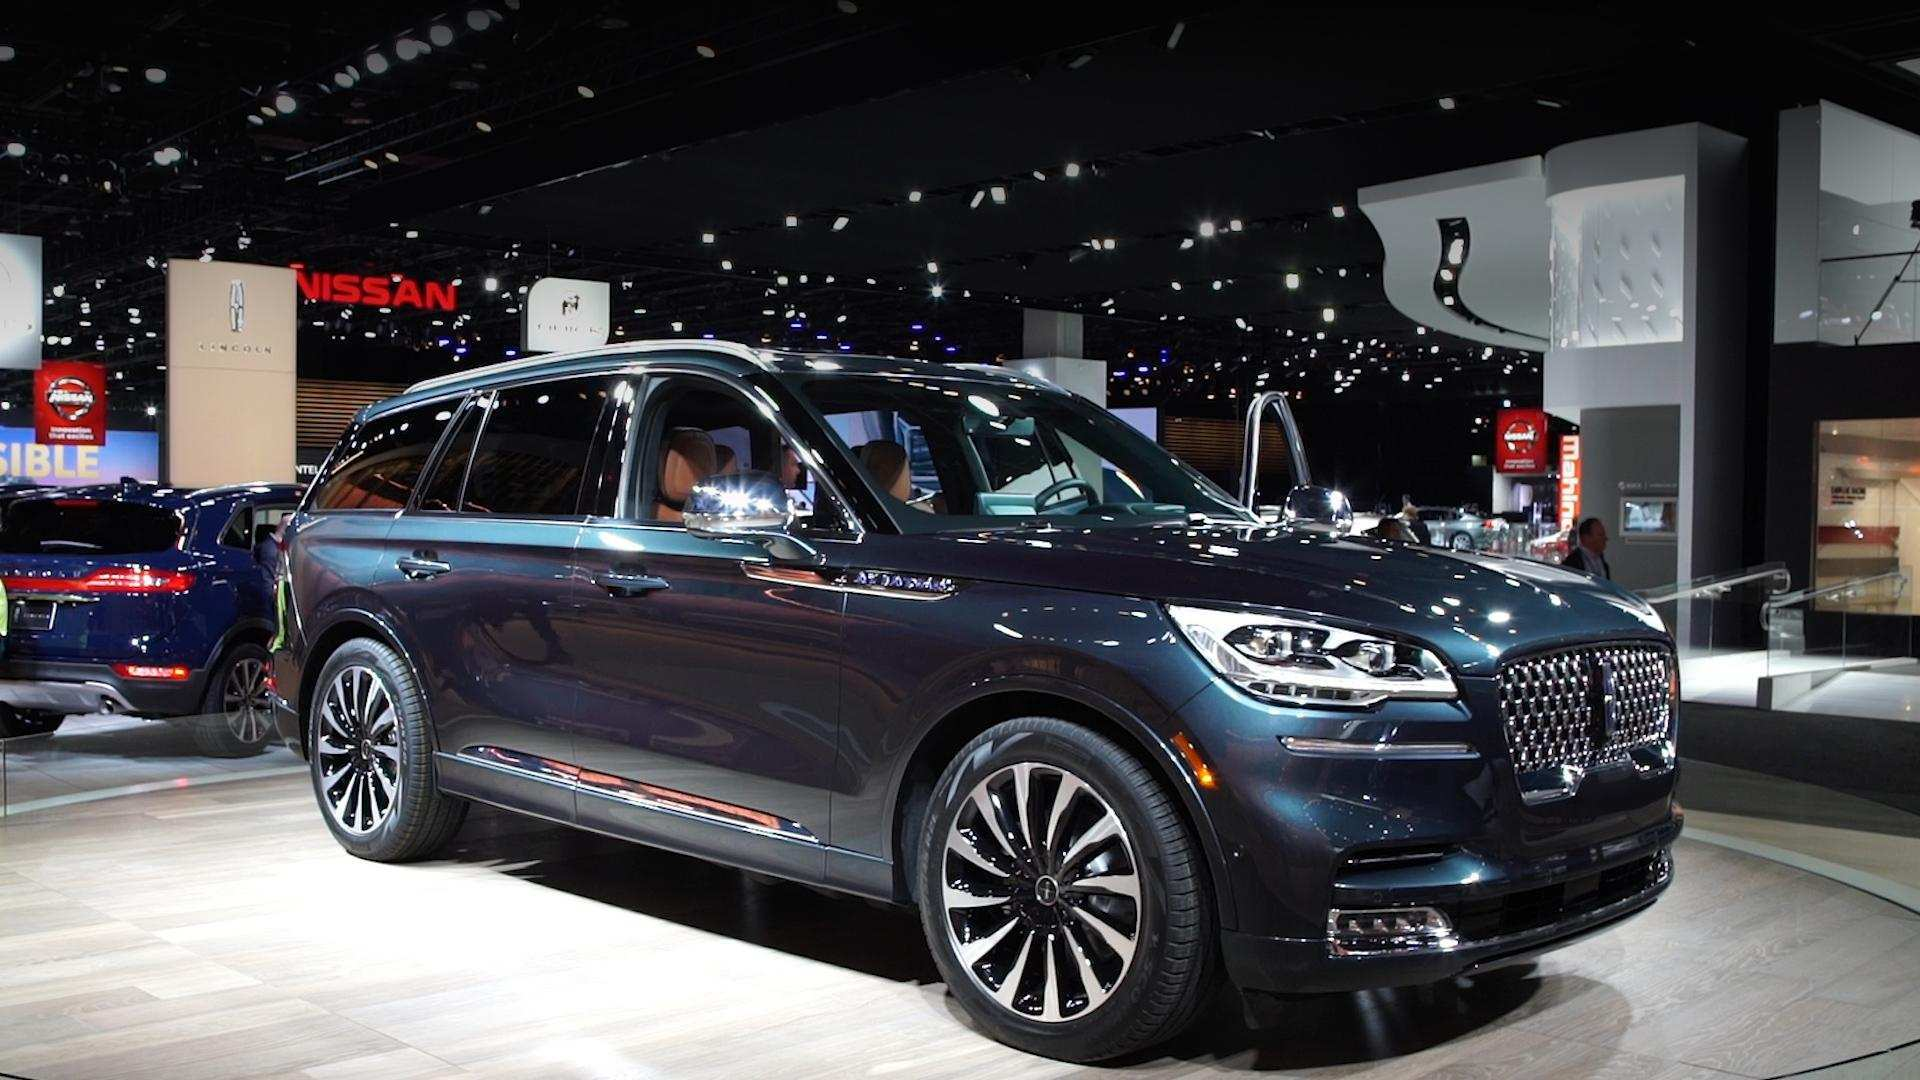 55 Best Review 2020 Lincoln Aviator Vs Acura Mdx Performance and New Engine for 2020 Lincoln Aviator Vs Acura Mdx